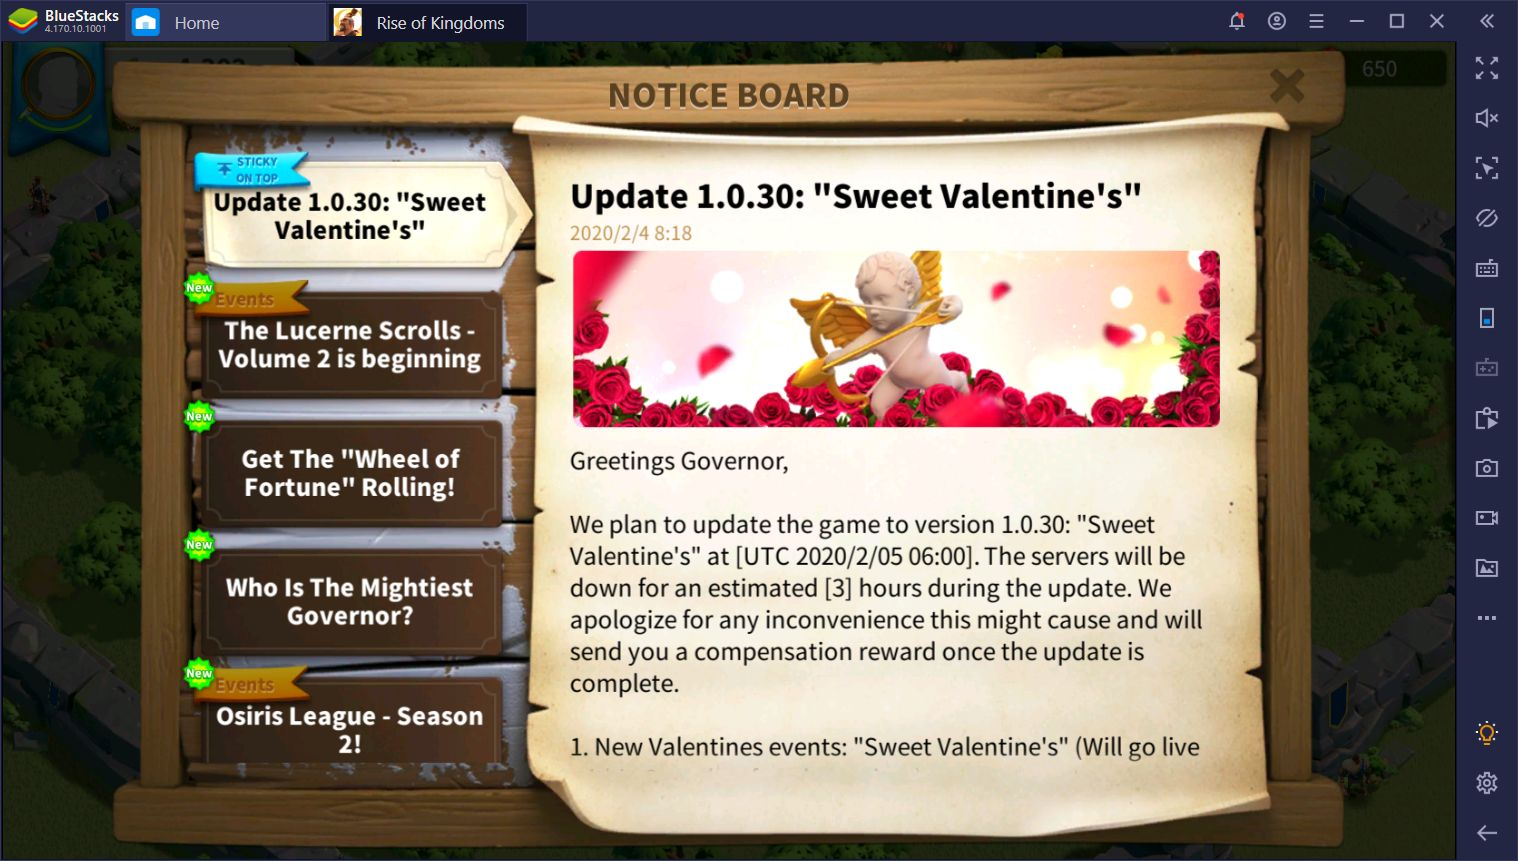 Rise of Kingdoms Sweet Valentine's Update - All You Need to Know About the New Patch